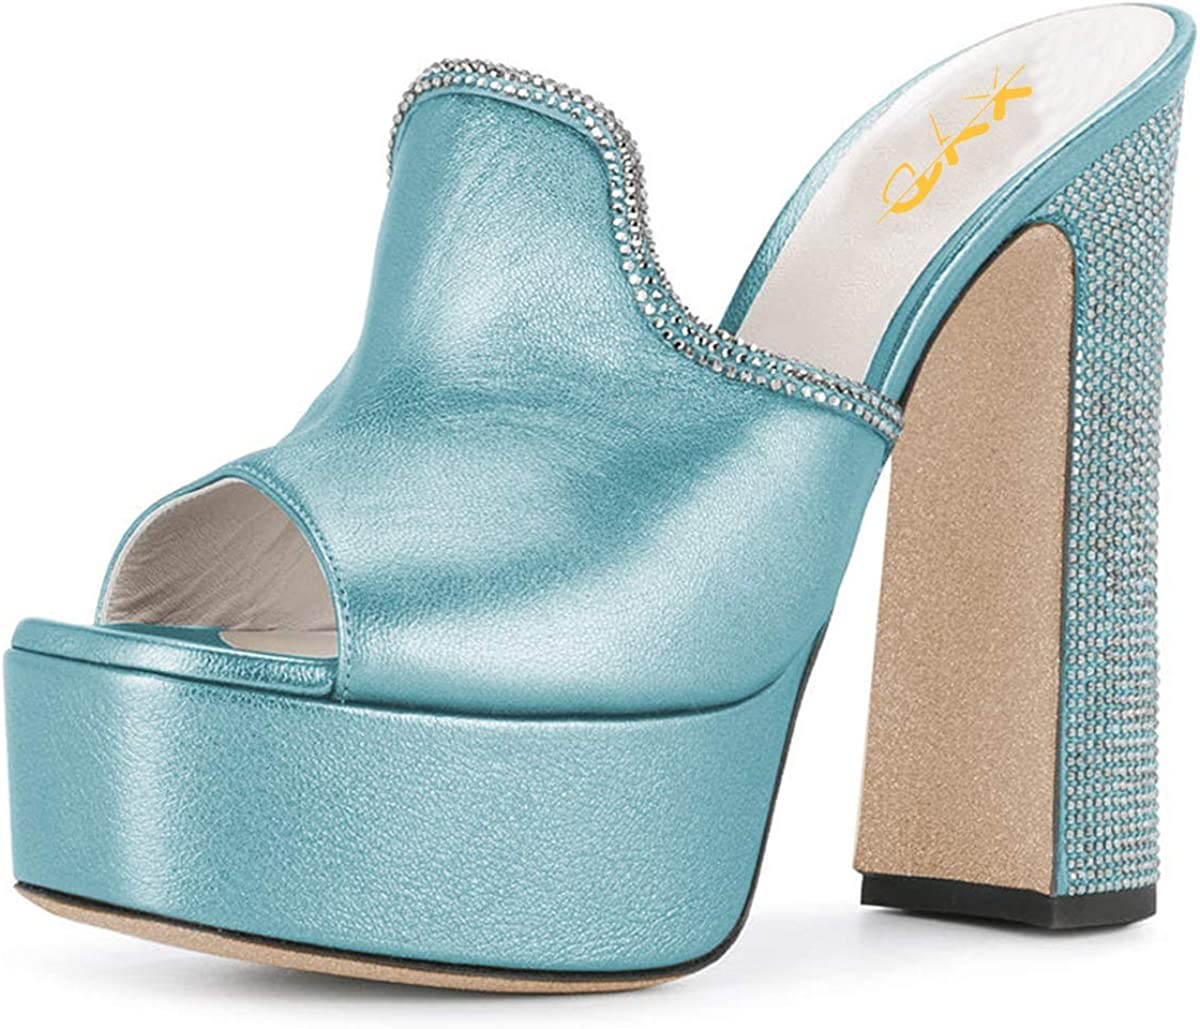 XYD Women Comfortable Peep Toe High Chunky Heel Mules Platform Leather Slide Sandals with Crystal Studs